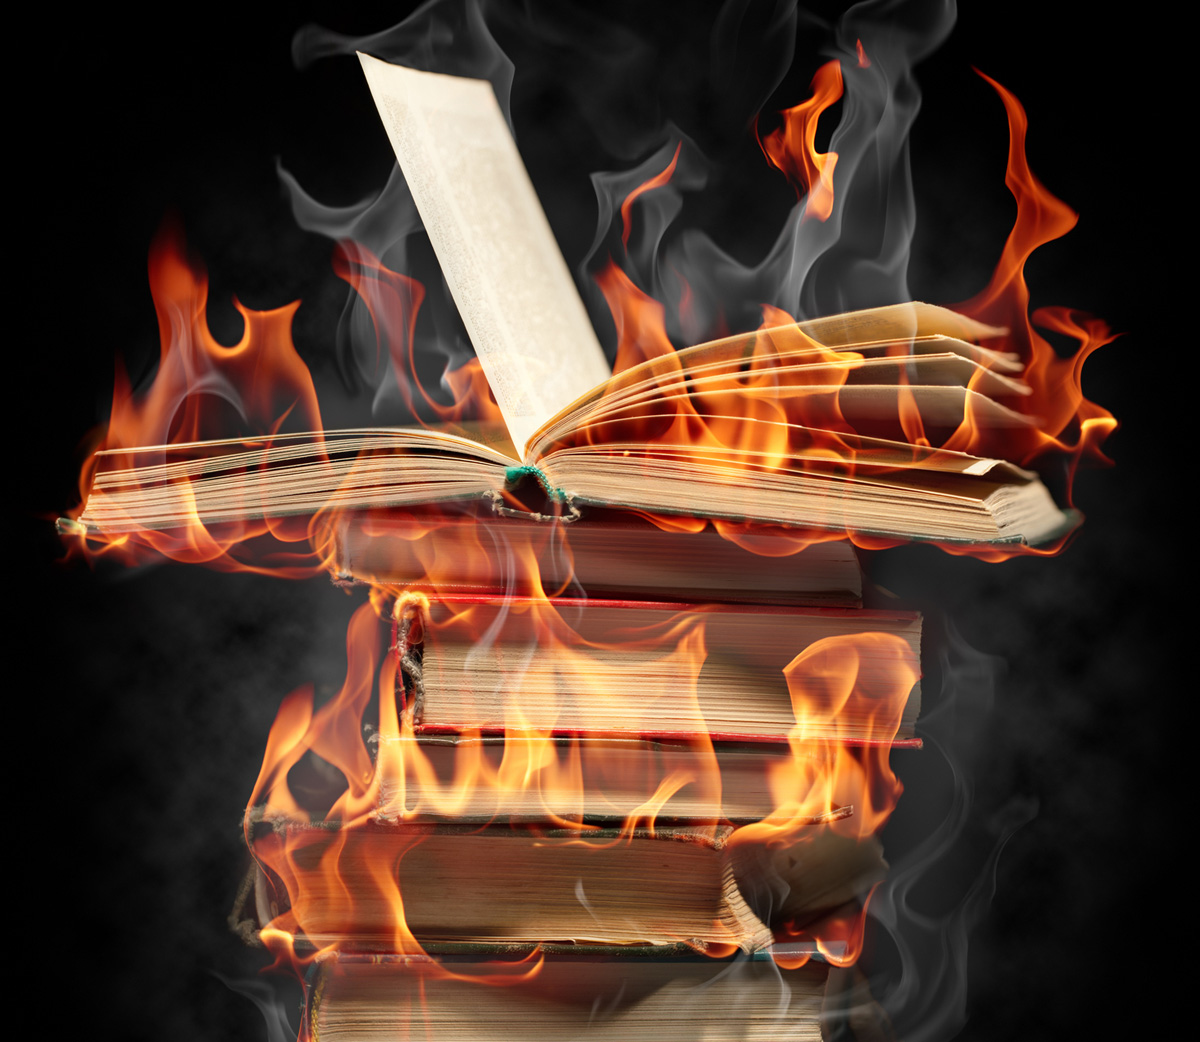 Thanadoula Burning Books_dreamstime_m_16582505